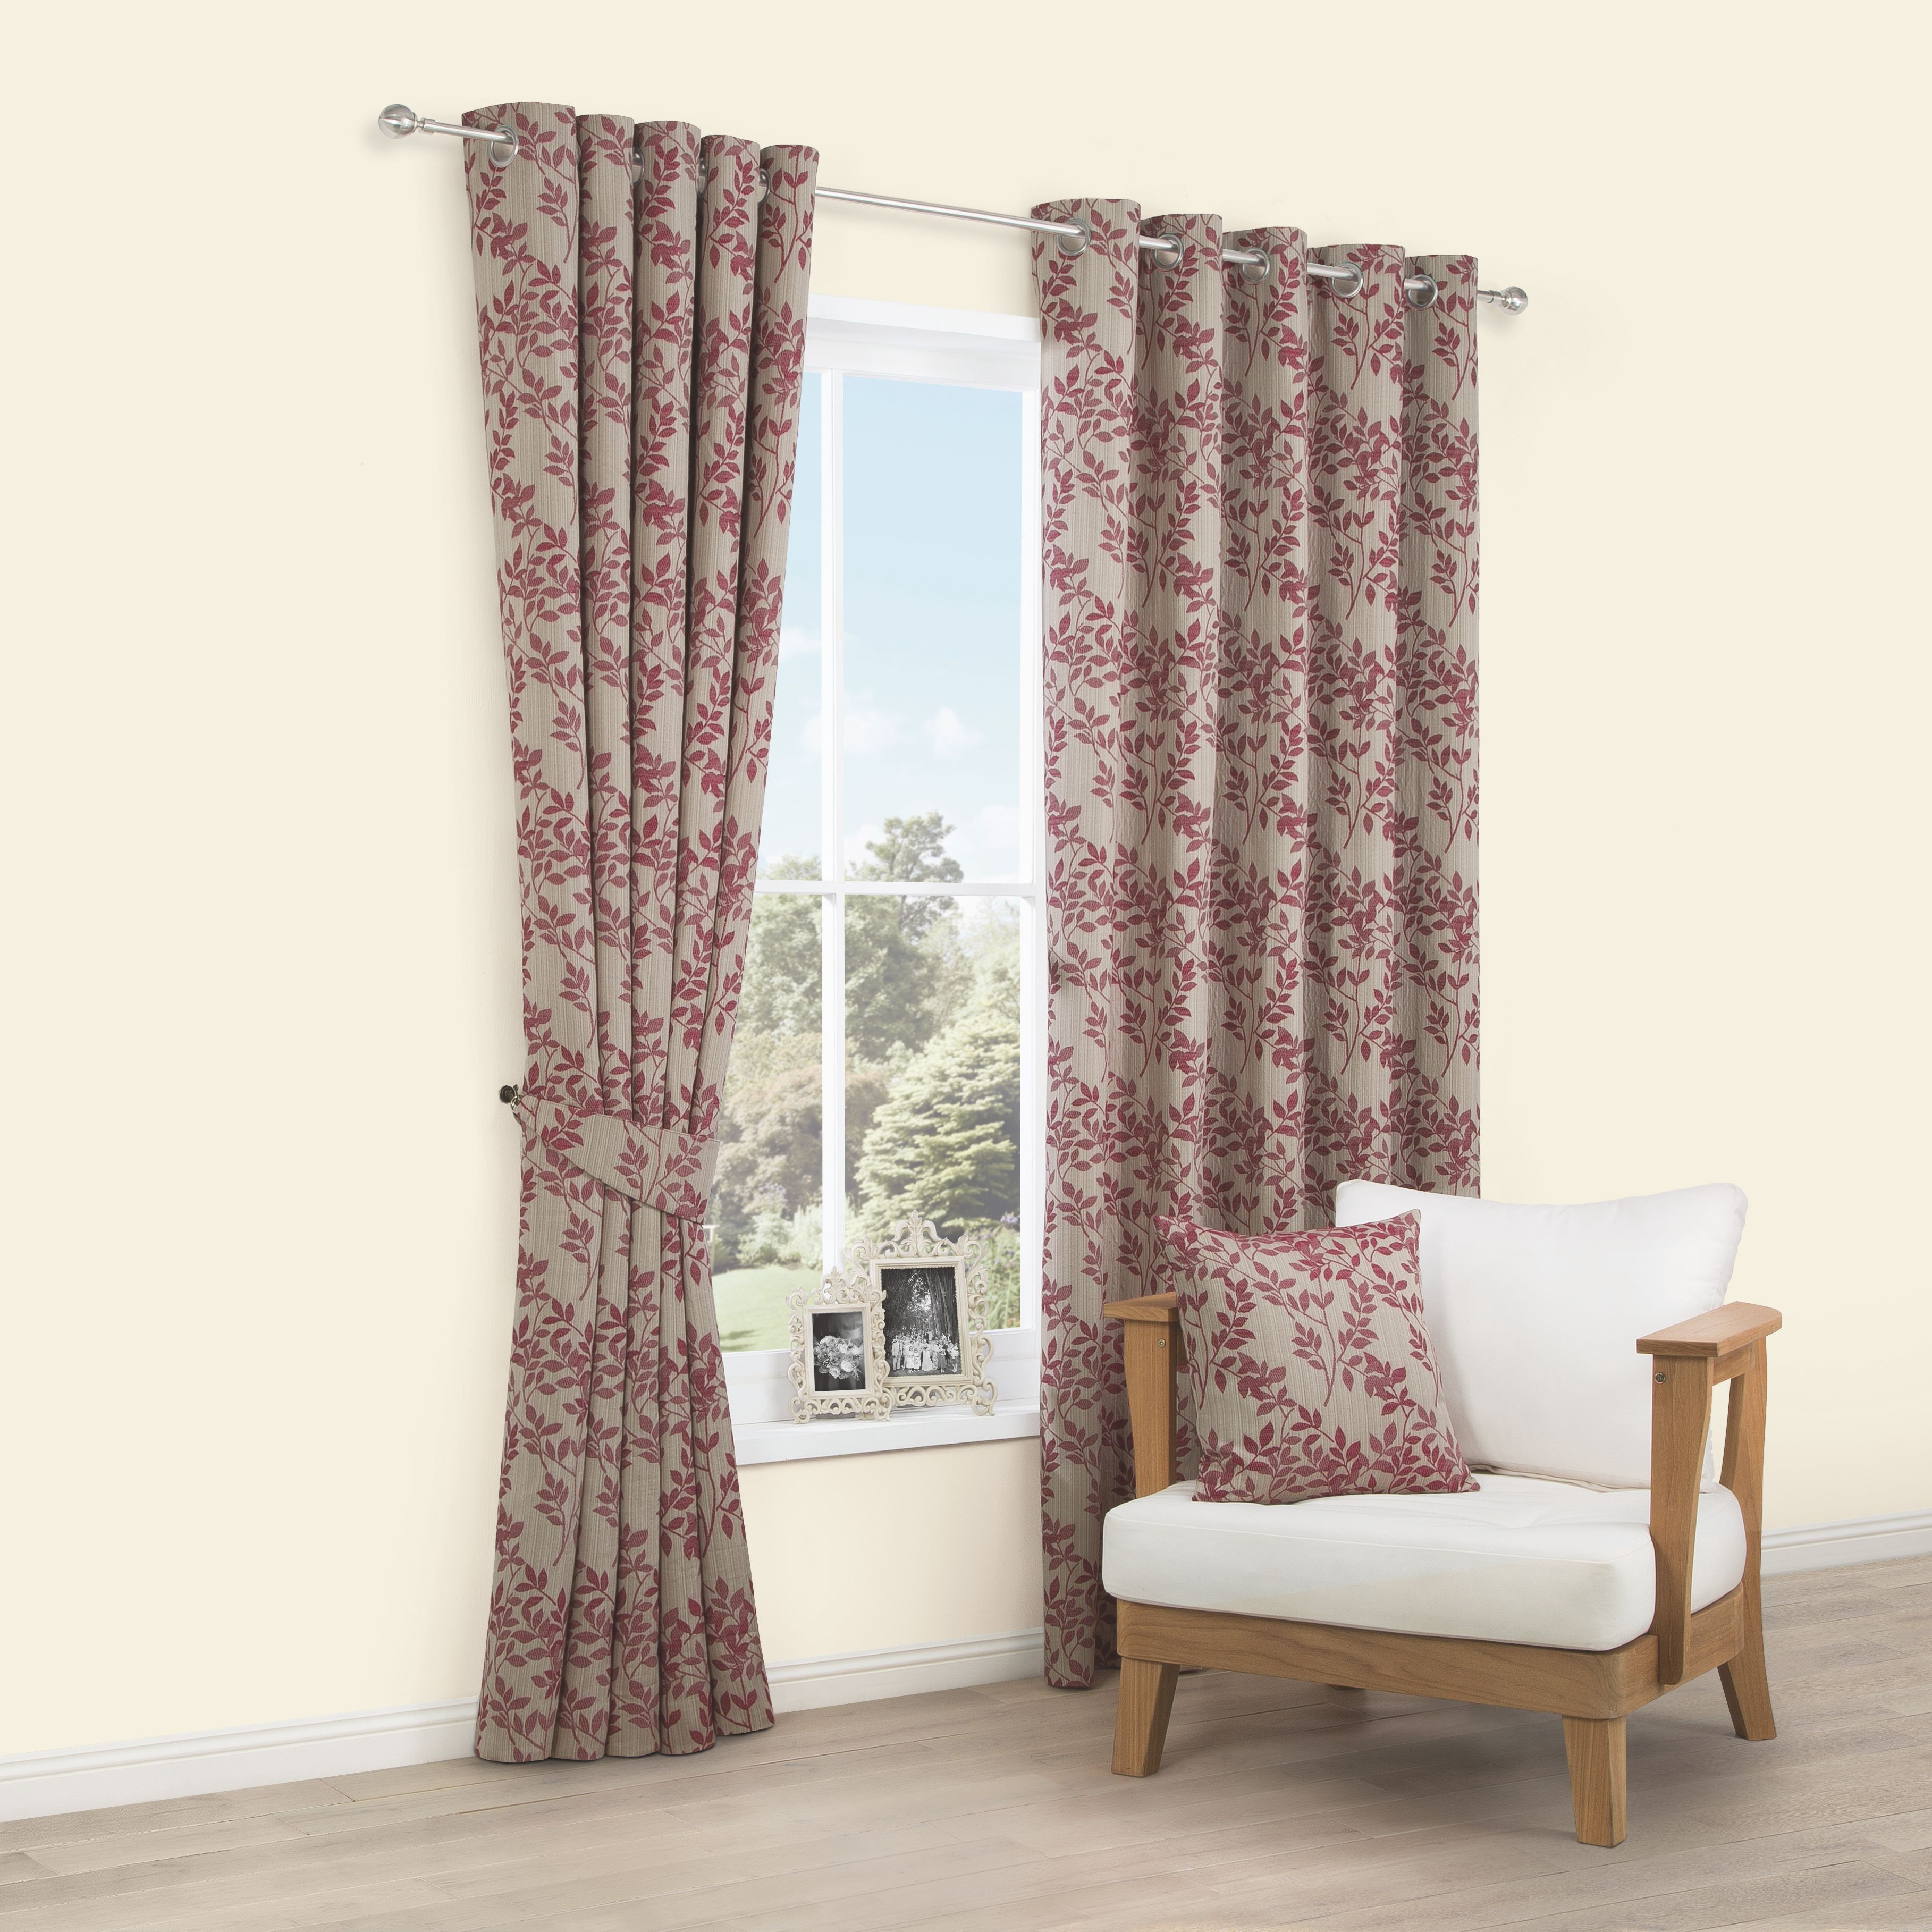 Walton Raspberry Leaves Jacquard Woven Eyelet Lined Curtains